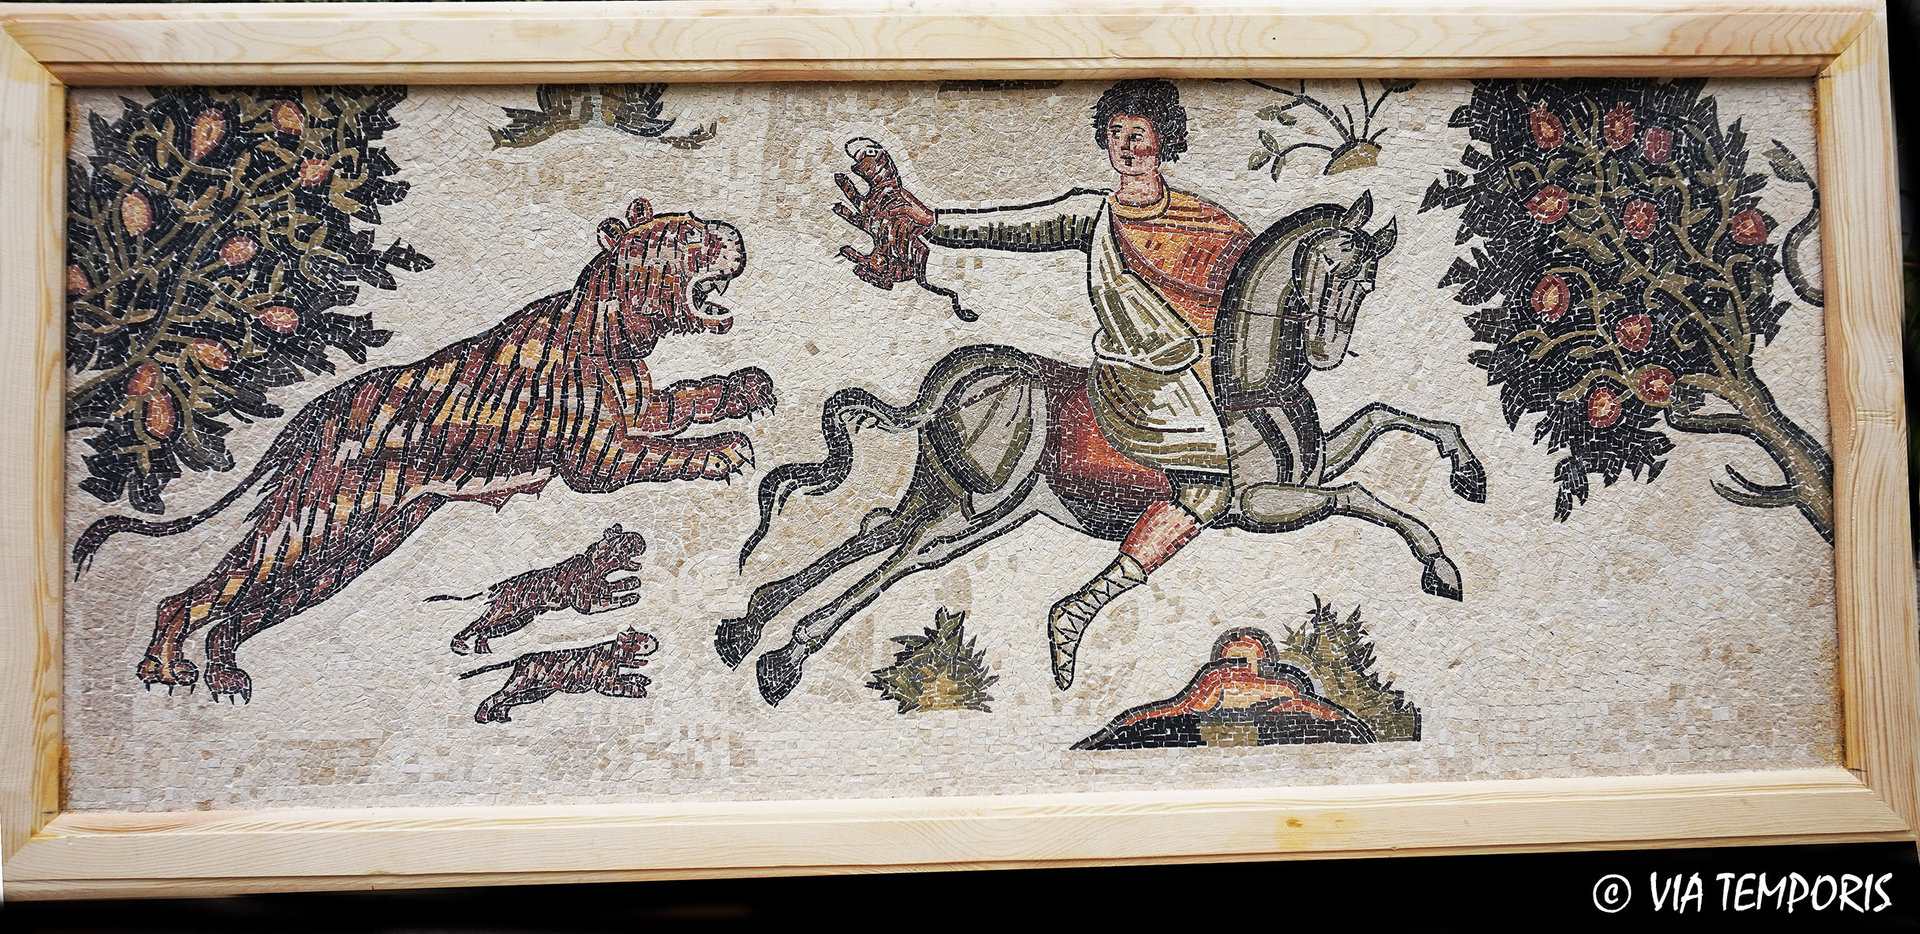 ROMAN MOSAIC - RIDER KIDNAPING A LITTLE TIGER - WORCESTER HUNT MUSEUM